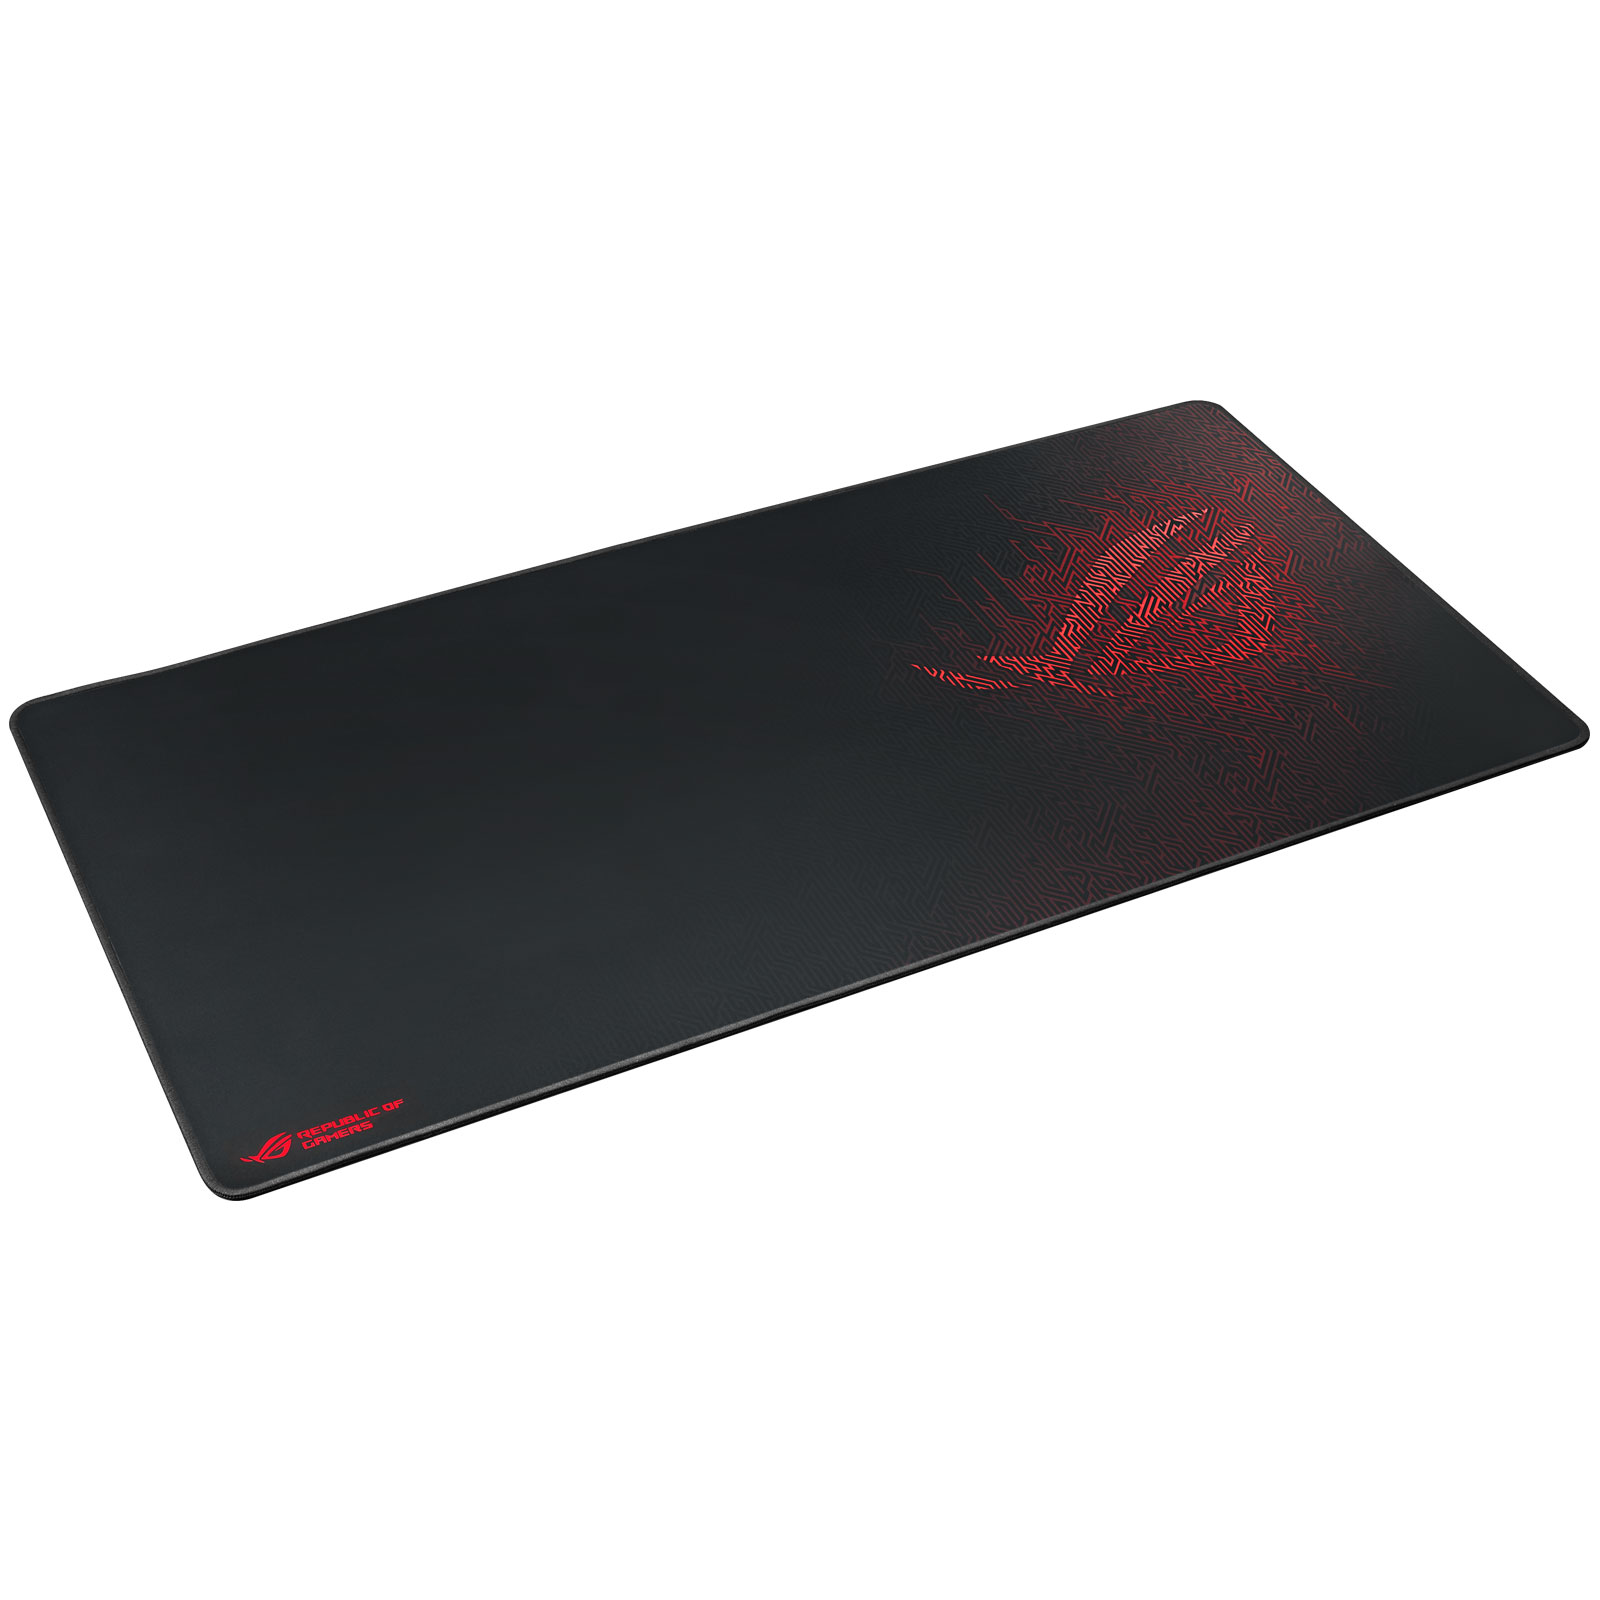 asus rog sheath tapis de souris asus sur. Black Bedroom Furniture Sets. Home Design Ideas